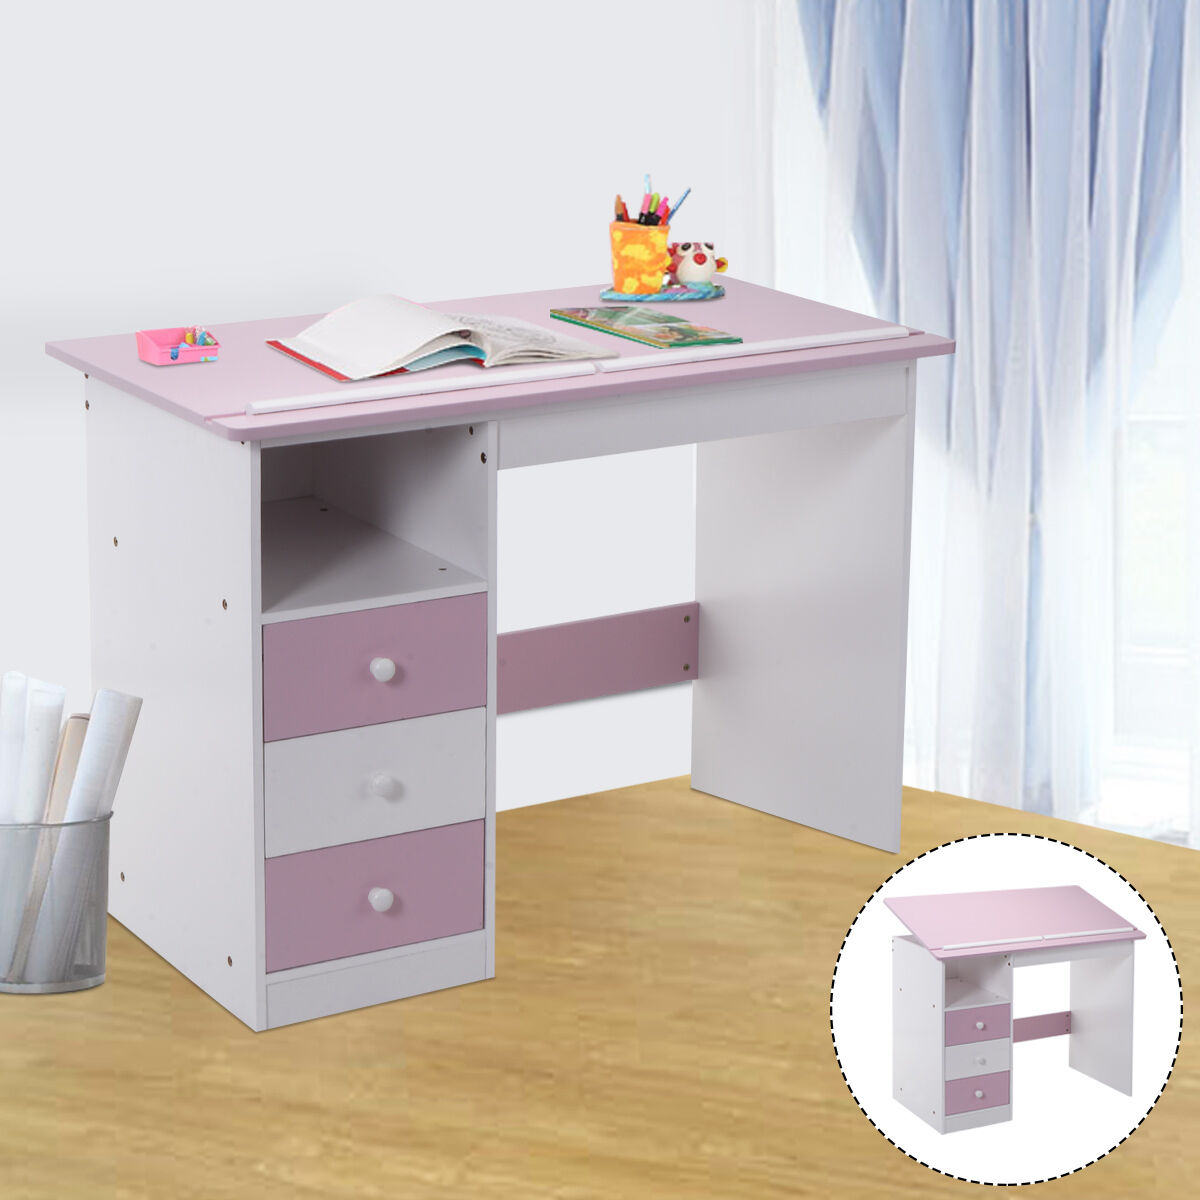 Top 10 Best Kids' Desks - YouTube